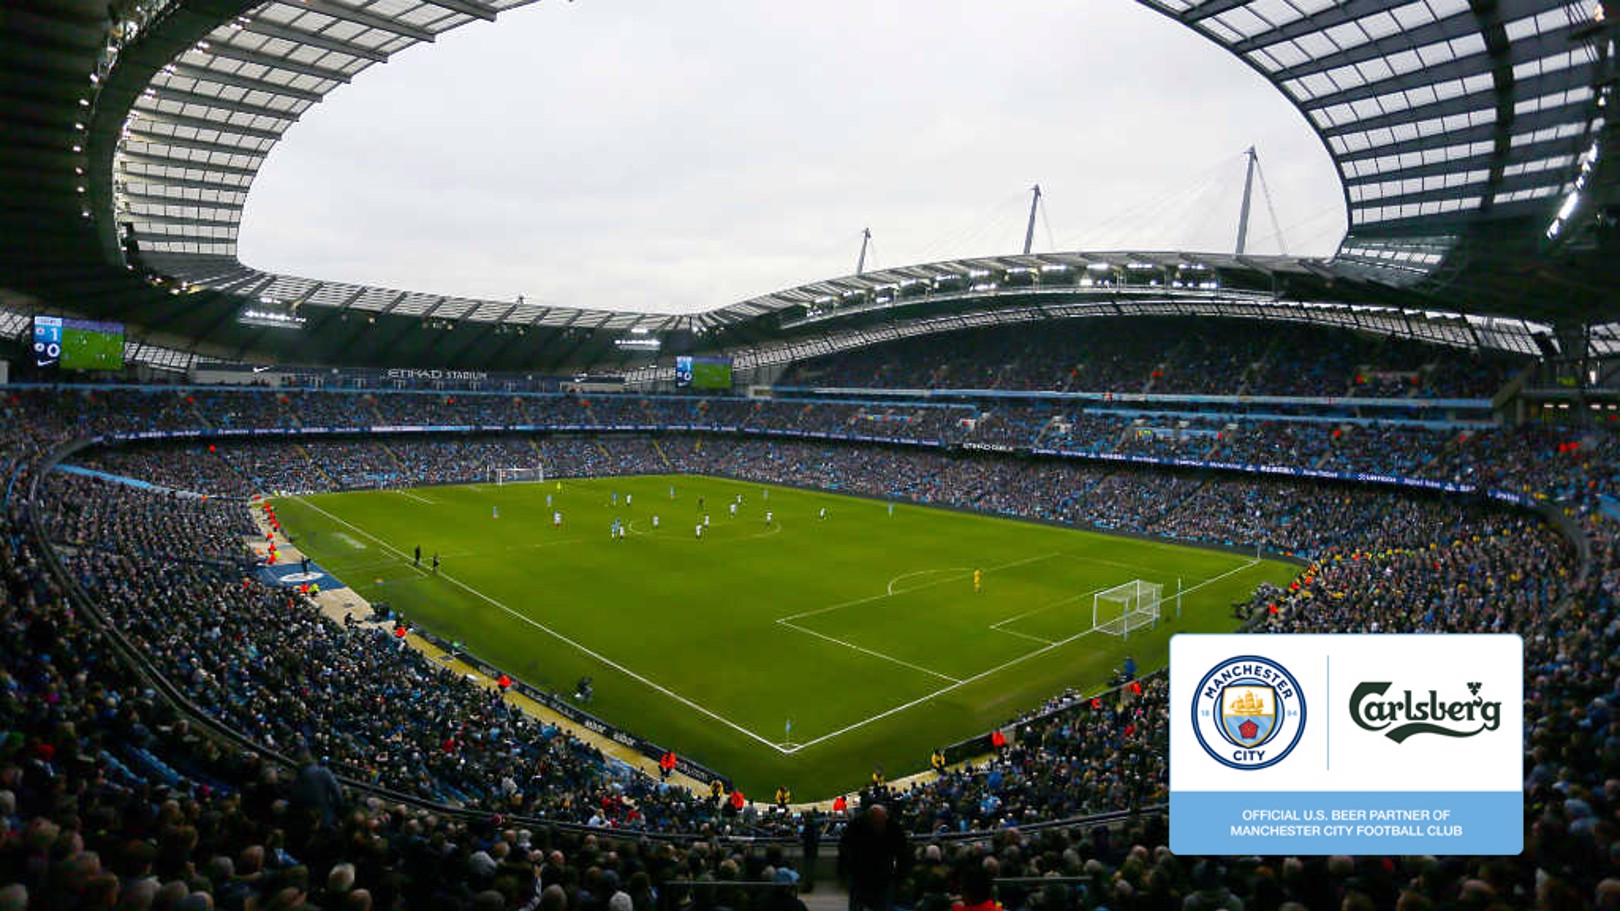 Man City team up with Carlsberg for US Tour